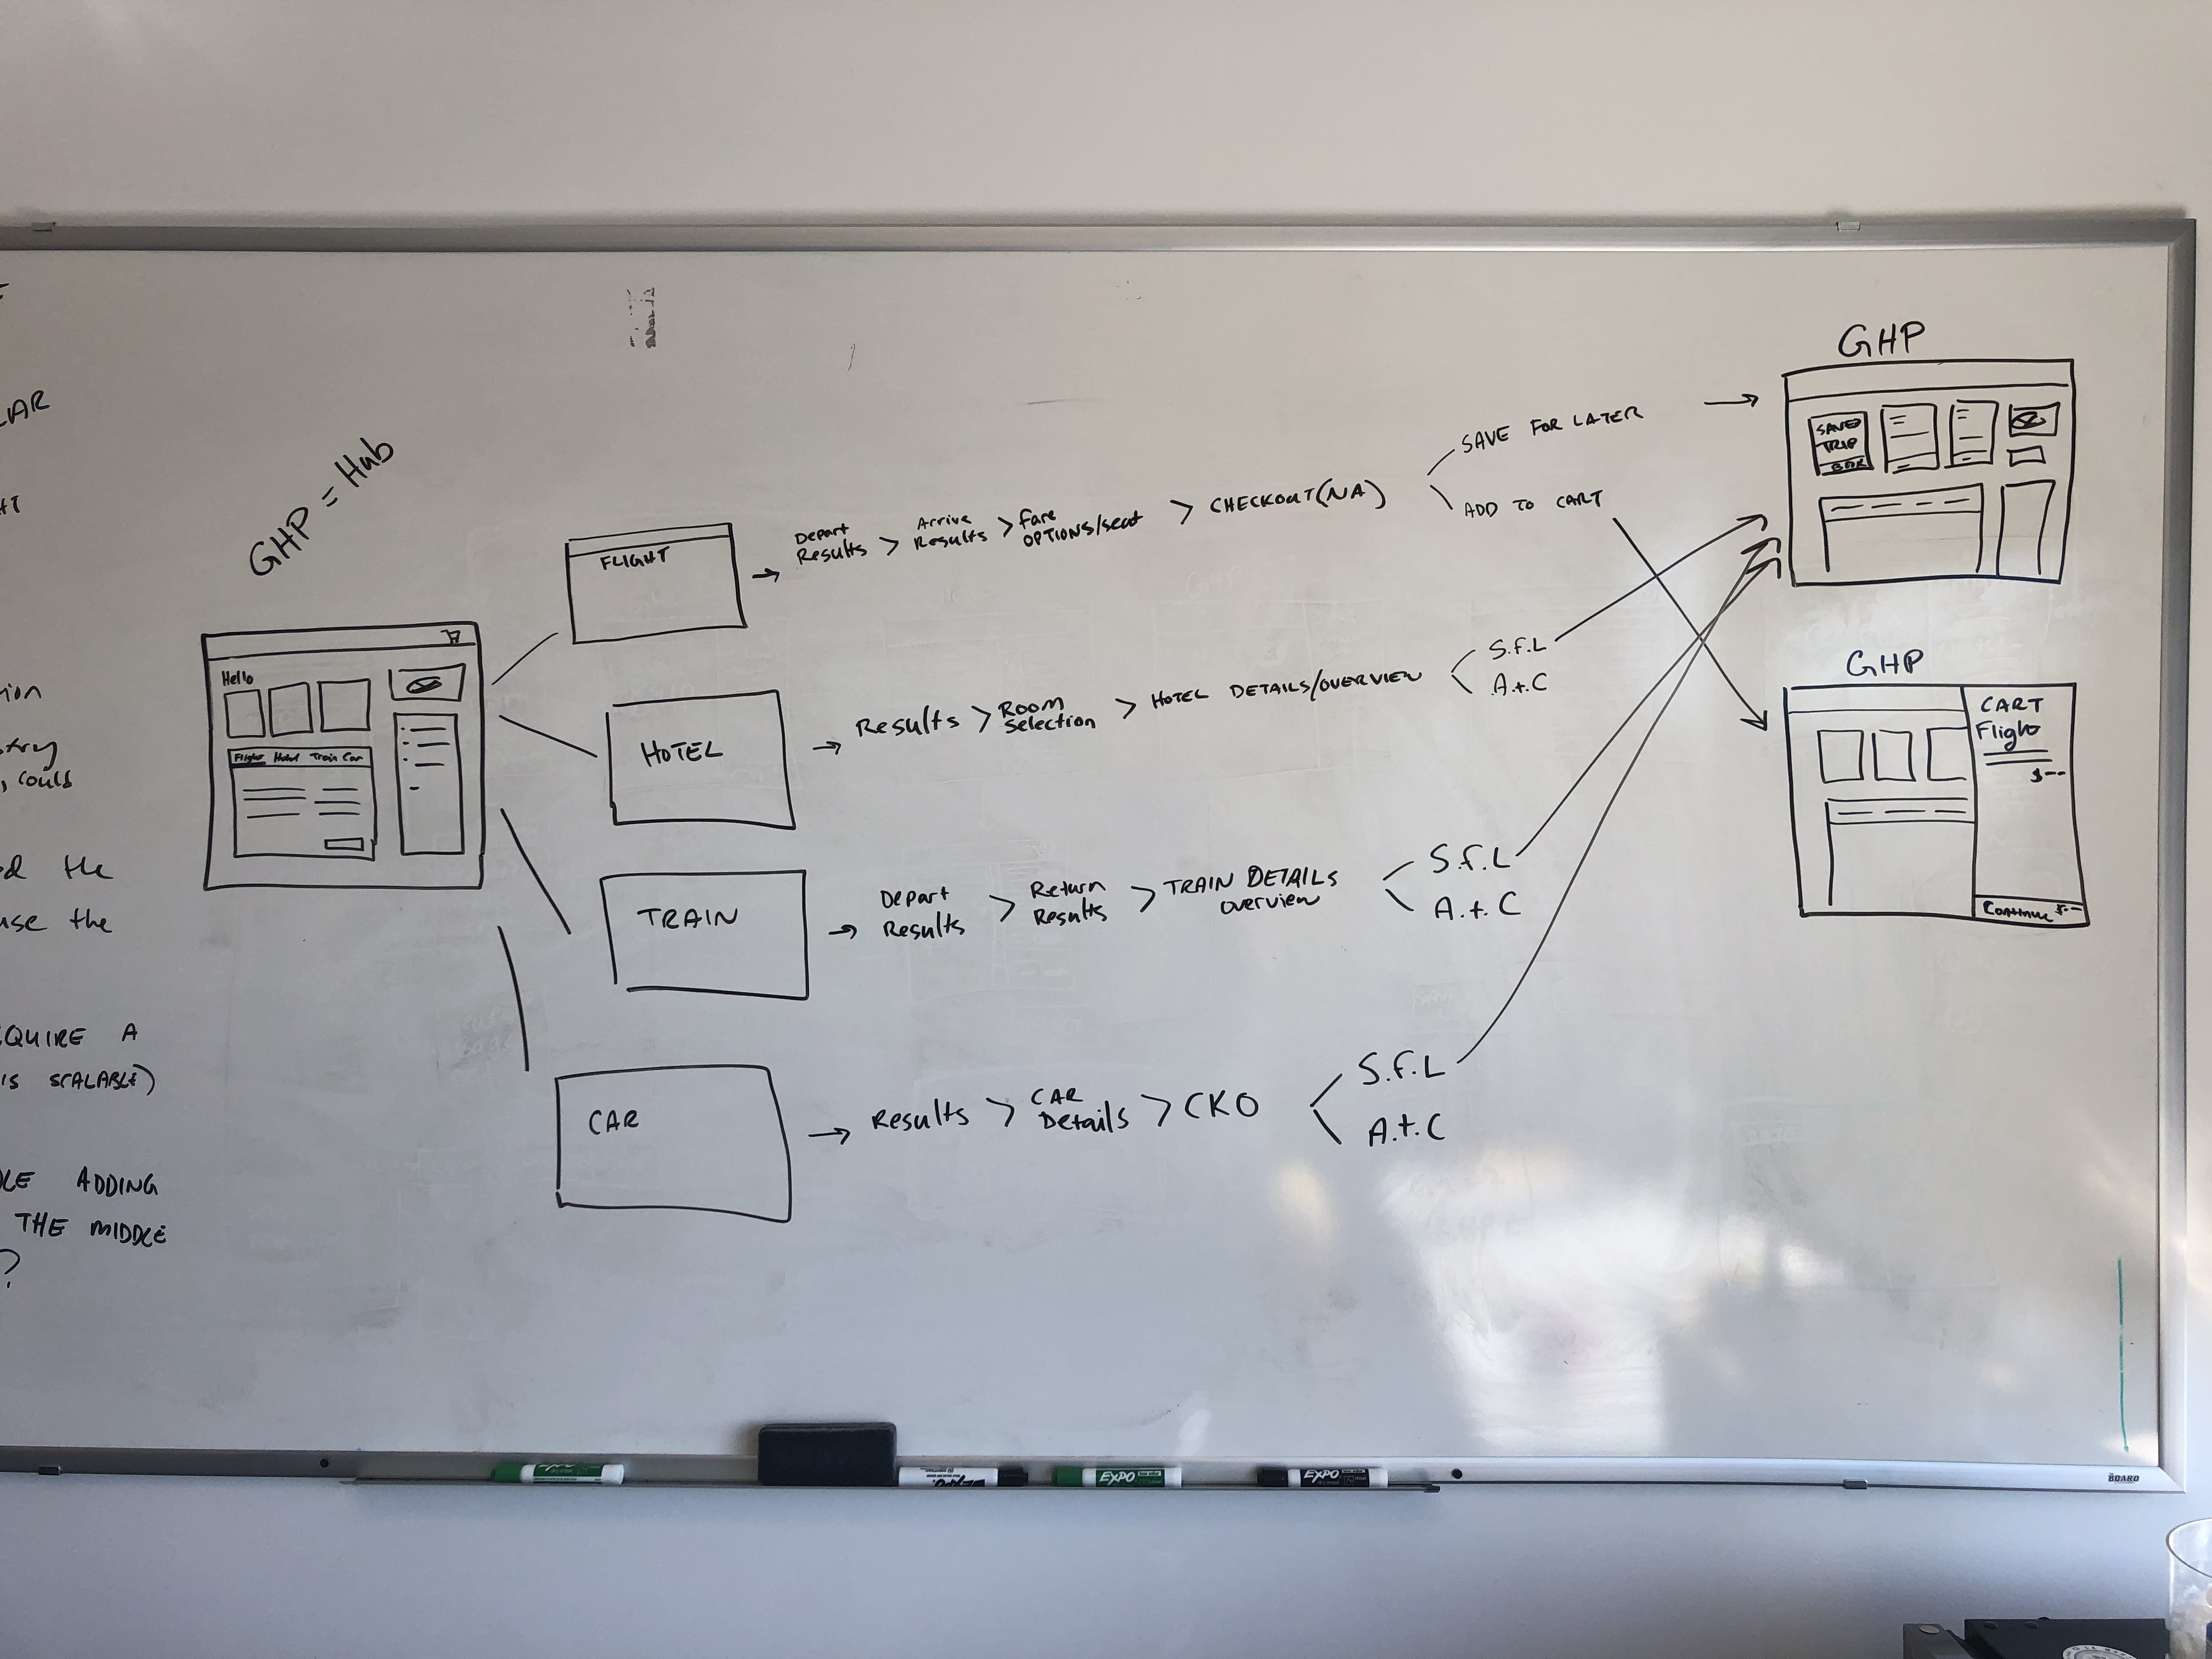 Whiteboard drawing of a shopping flow with lots of arrows and annotations